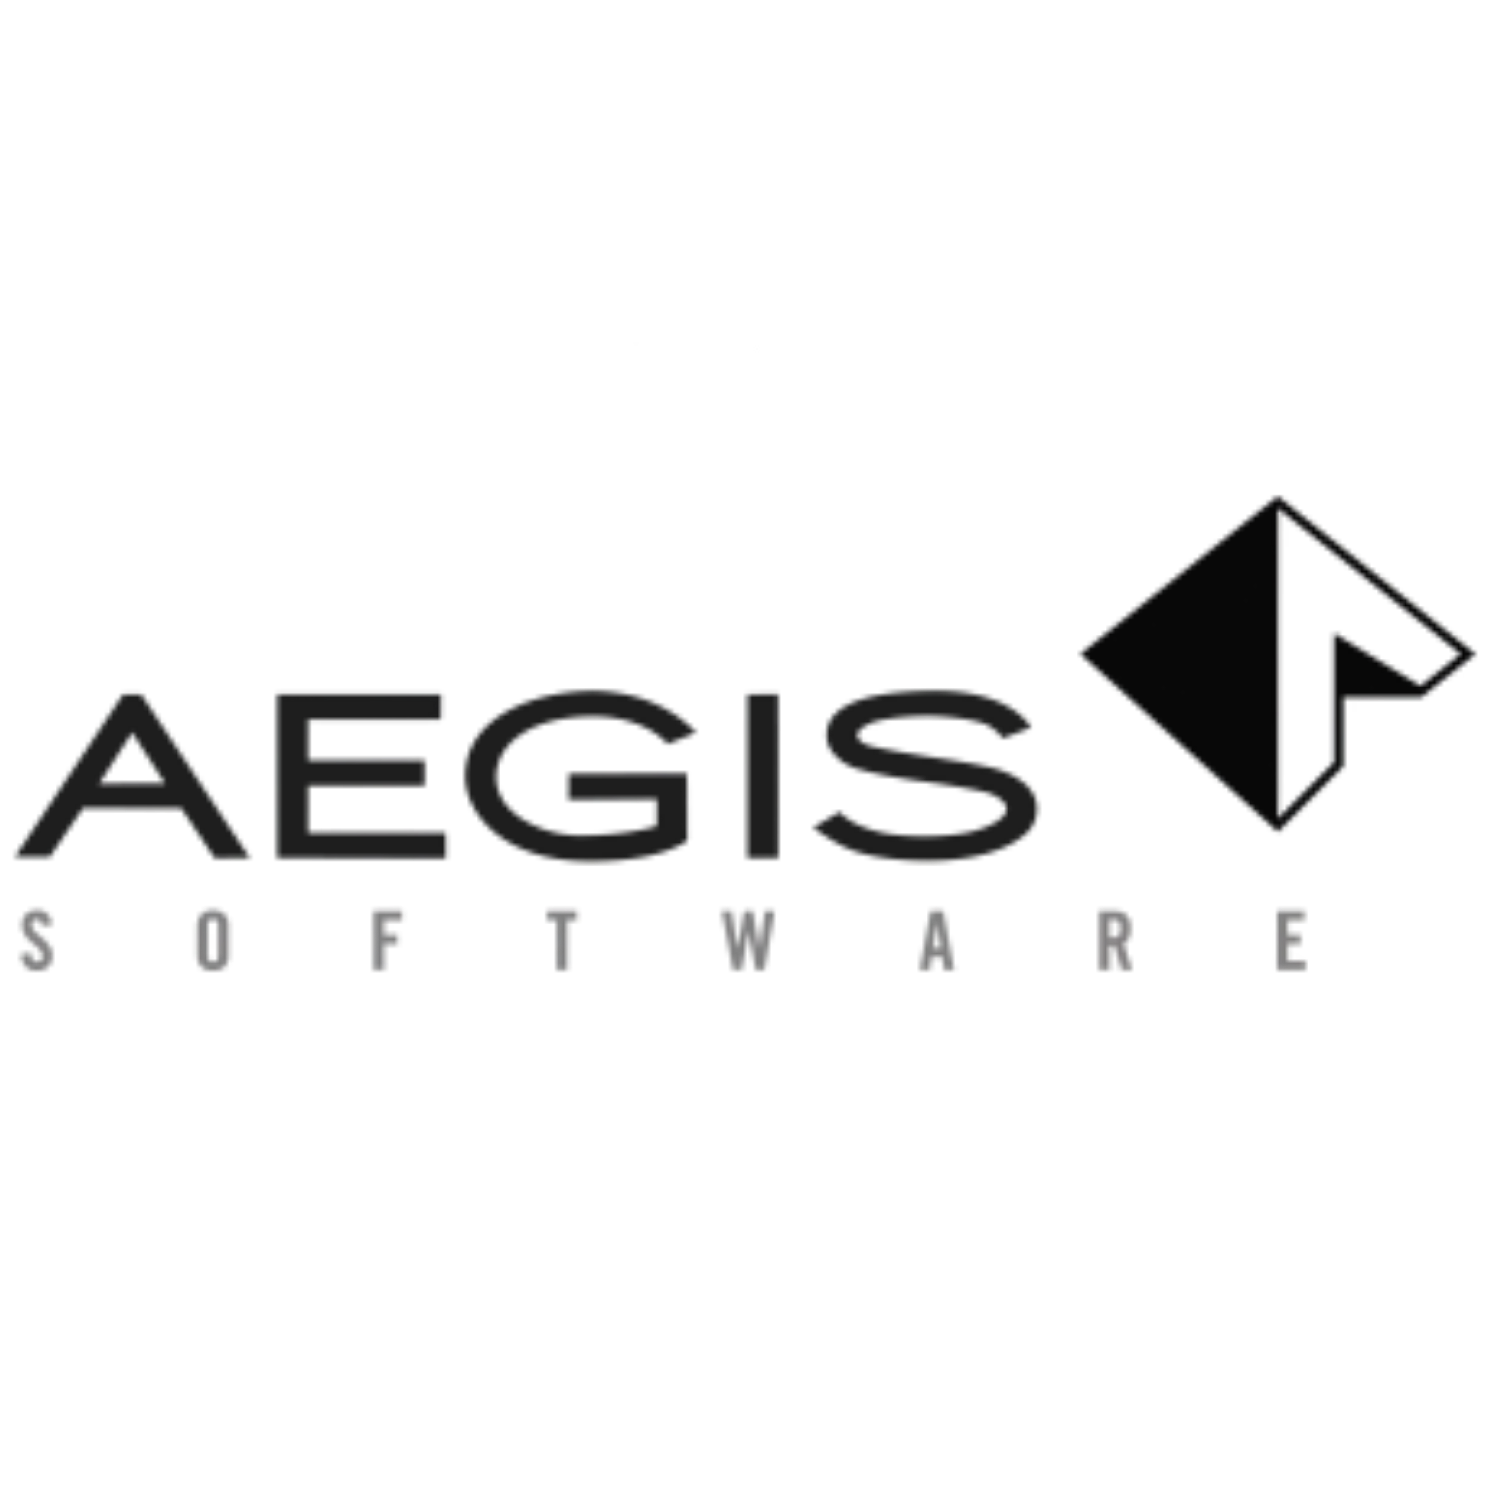 aegis-software-logo